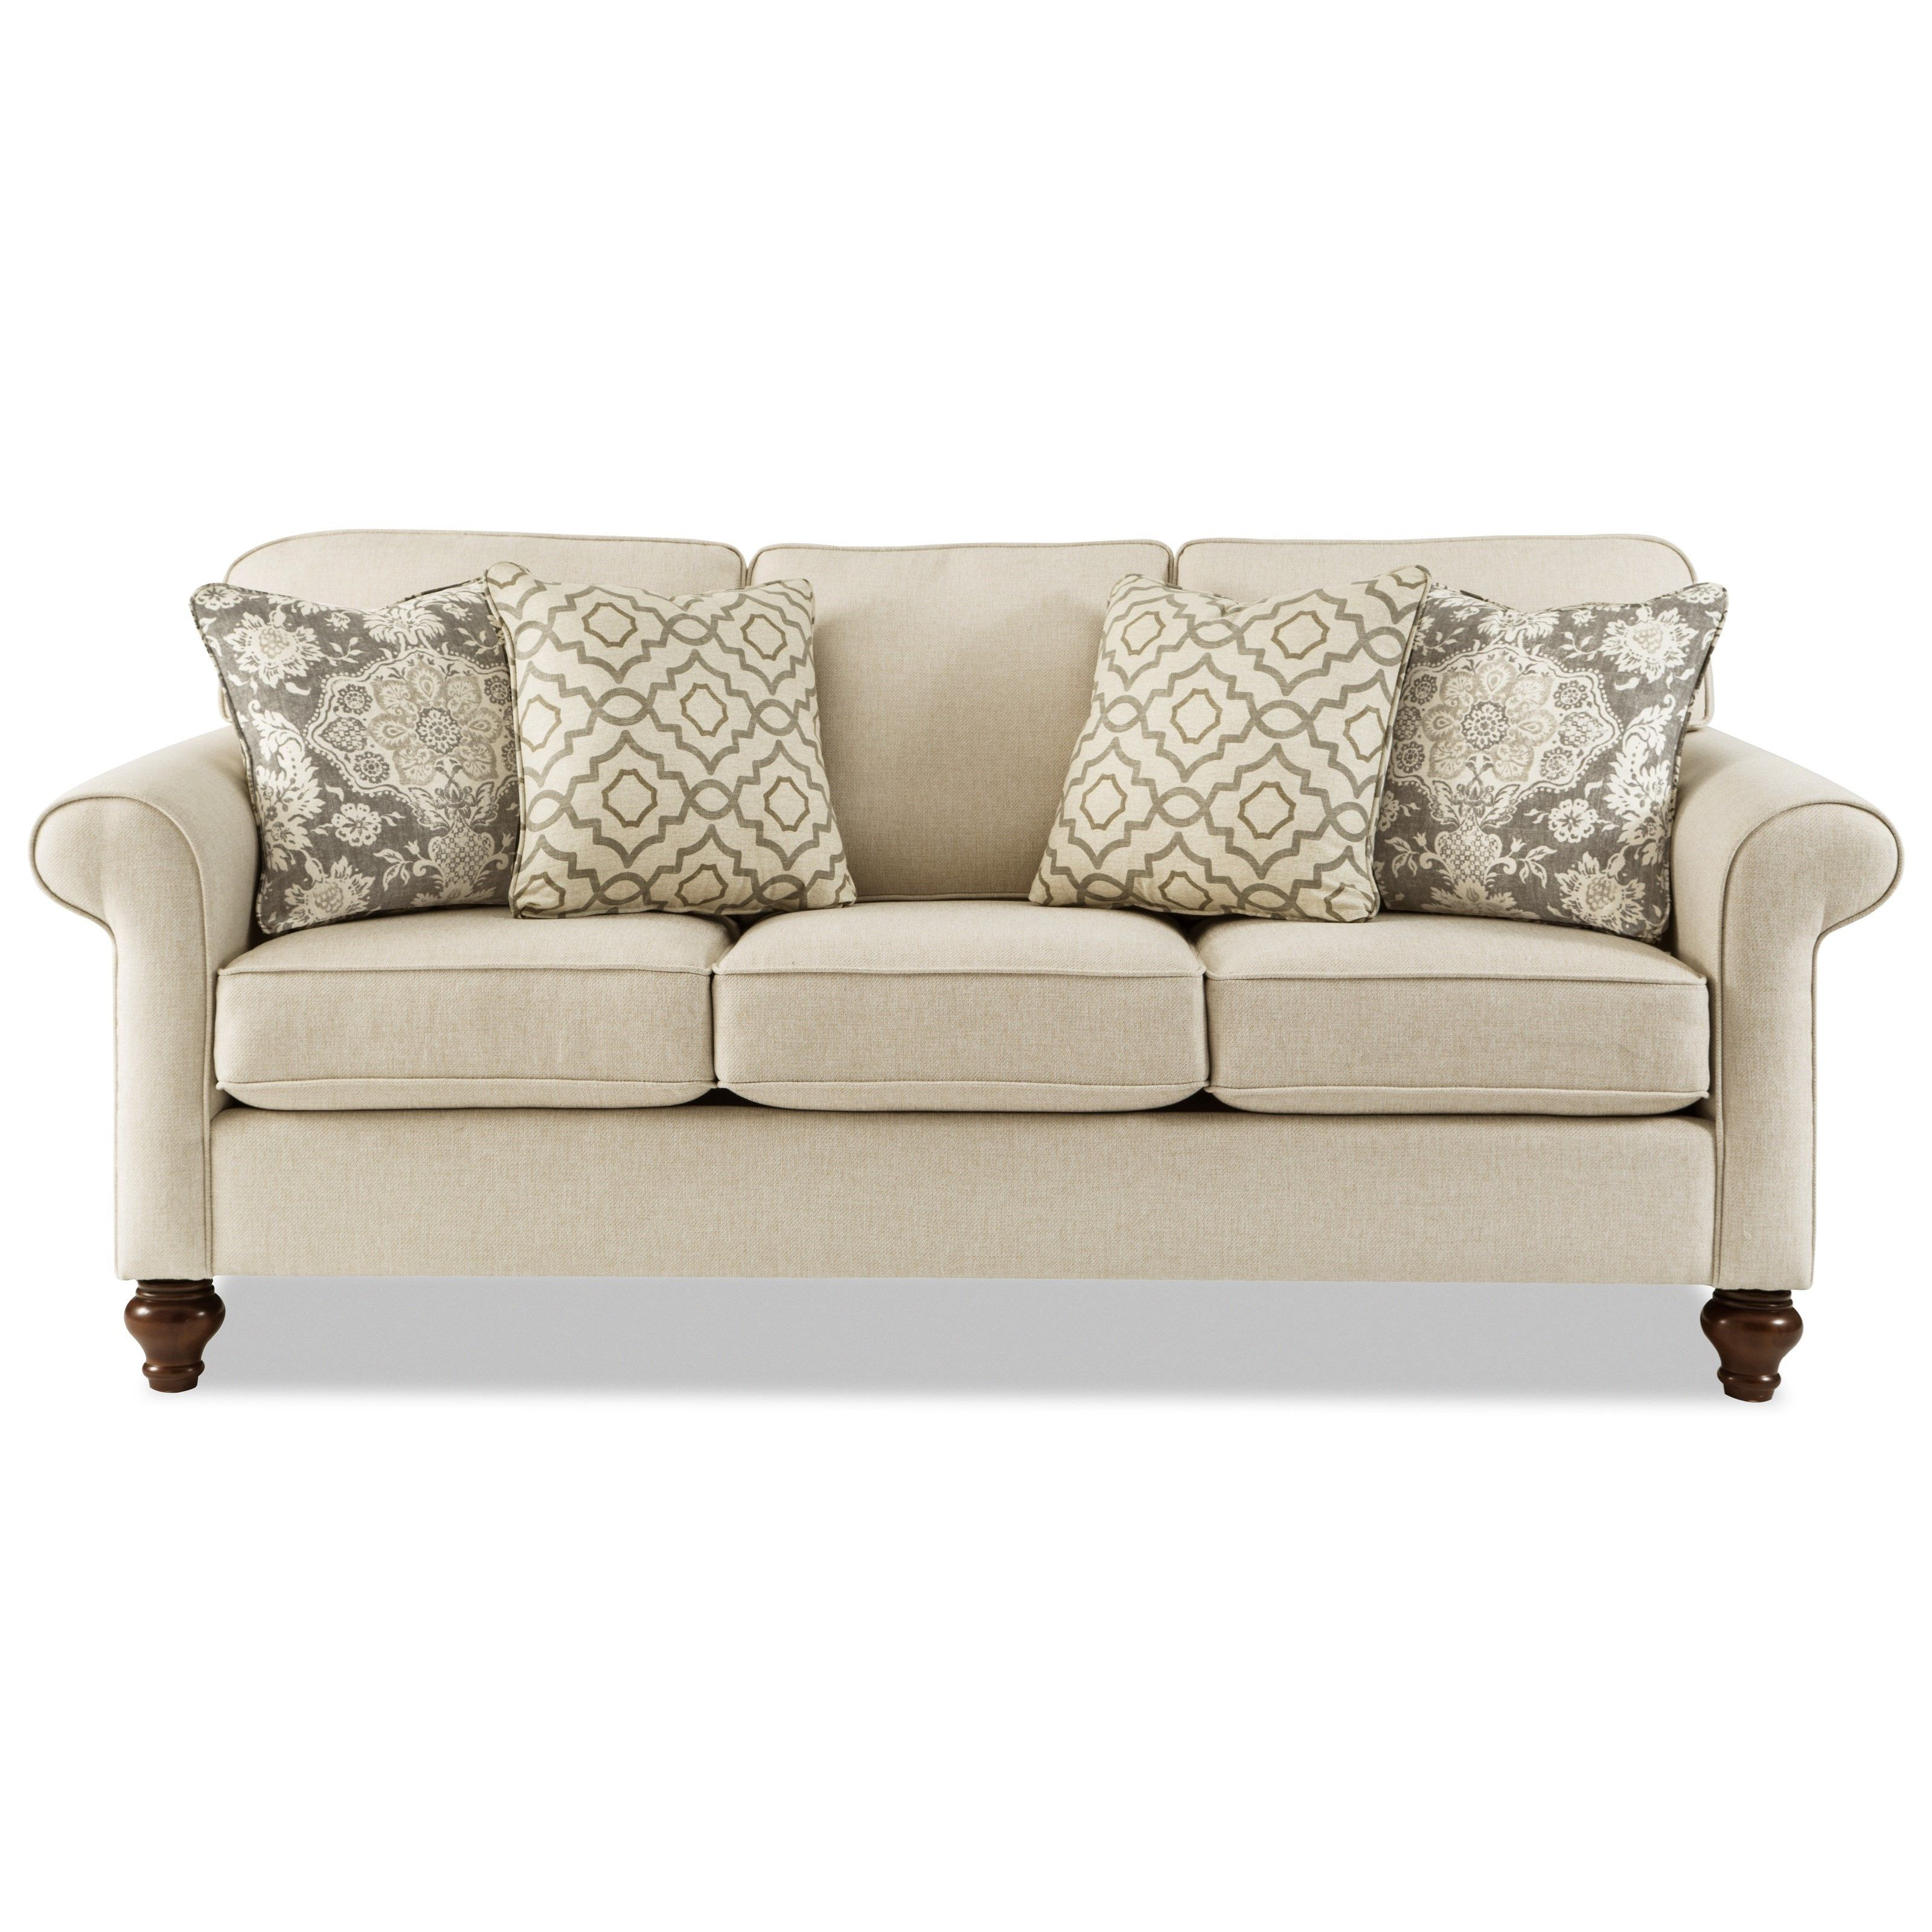 773850 Traditional Sofa By Hickory Craft At Godby Home Furnishings Craftmaster Furniture Furniture Traditional Sofa